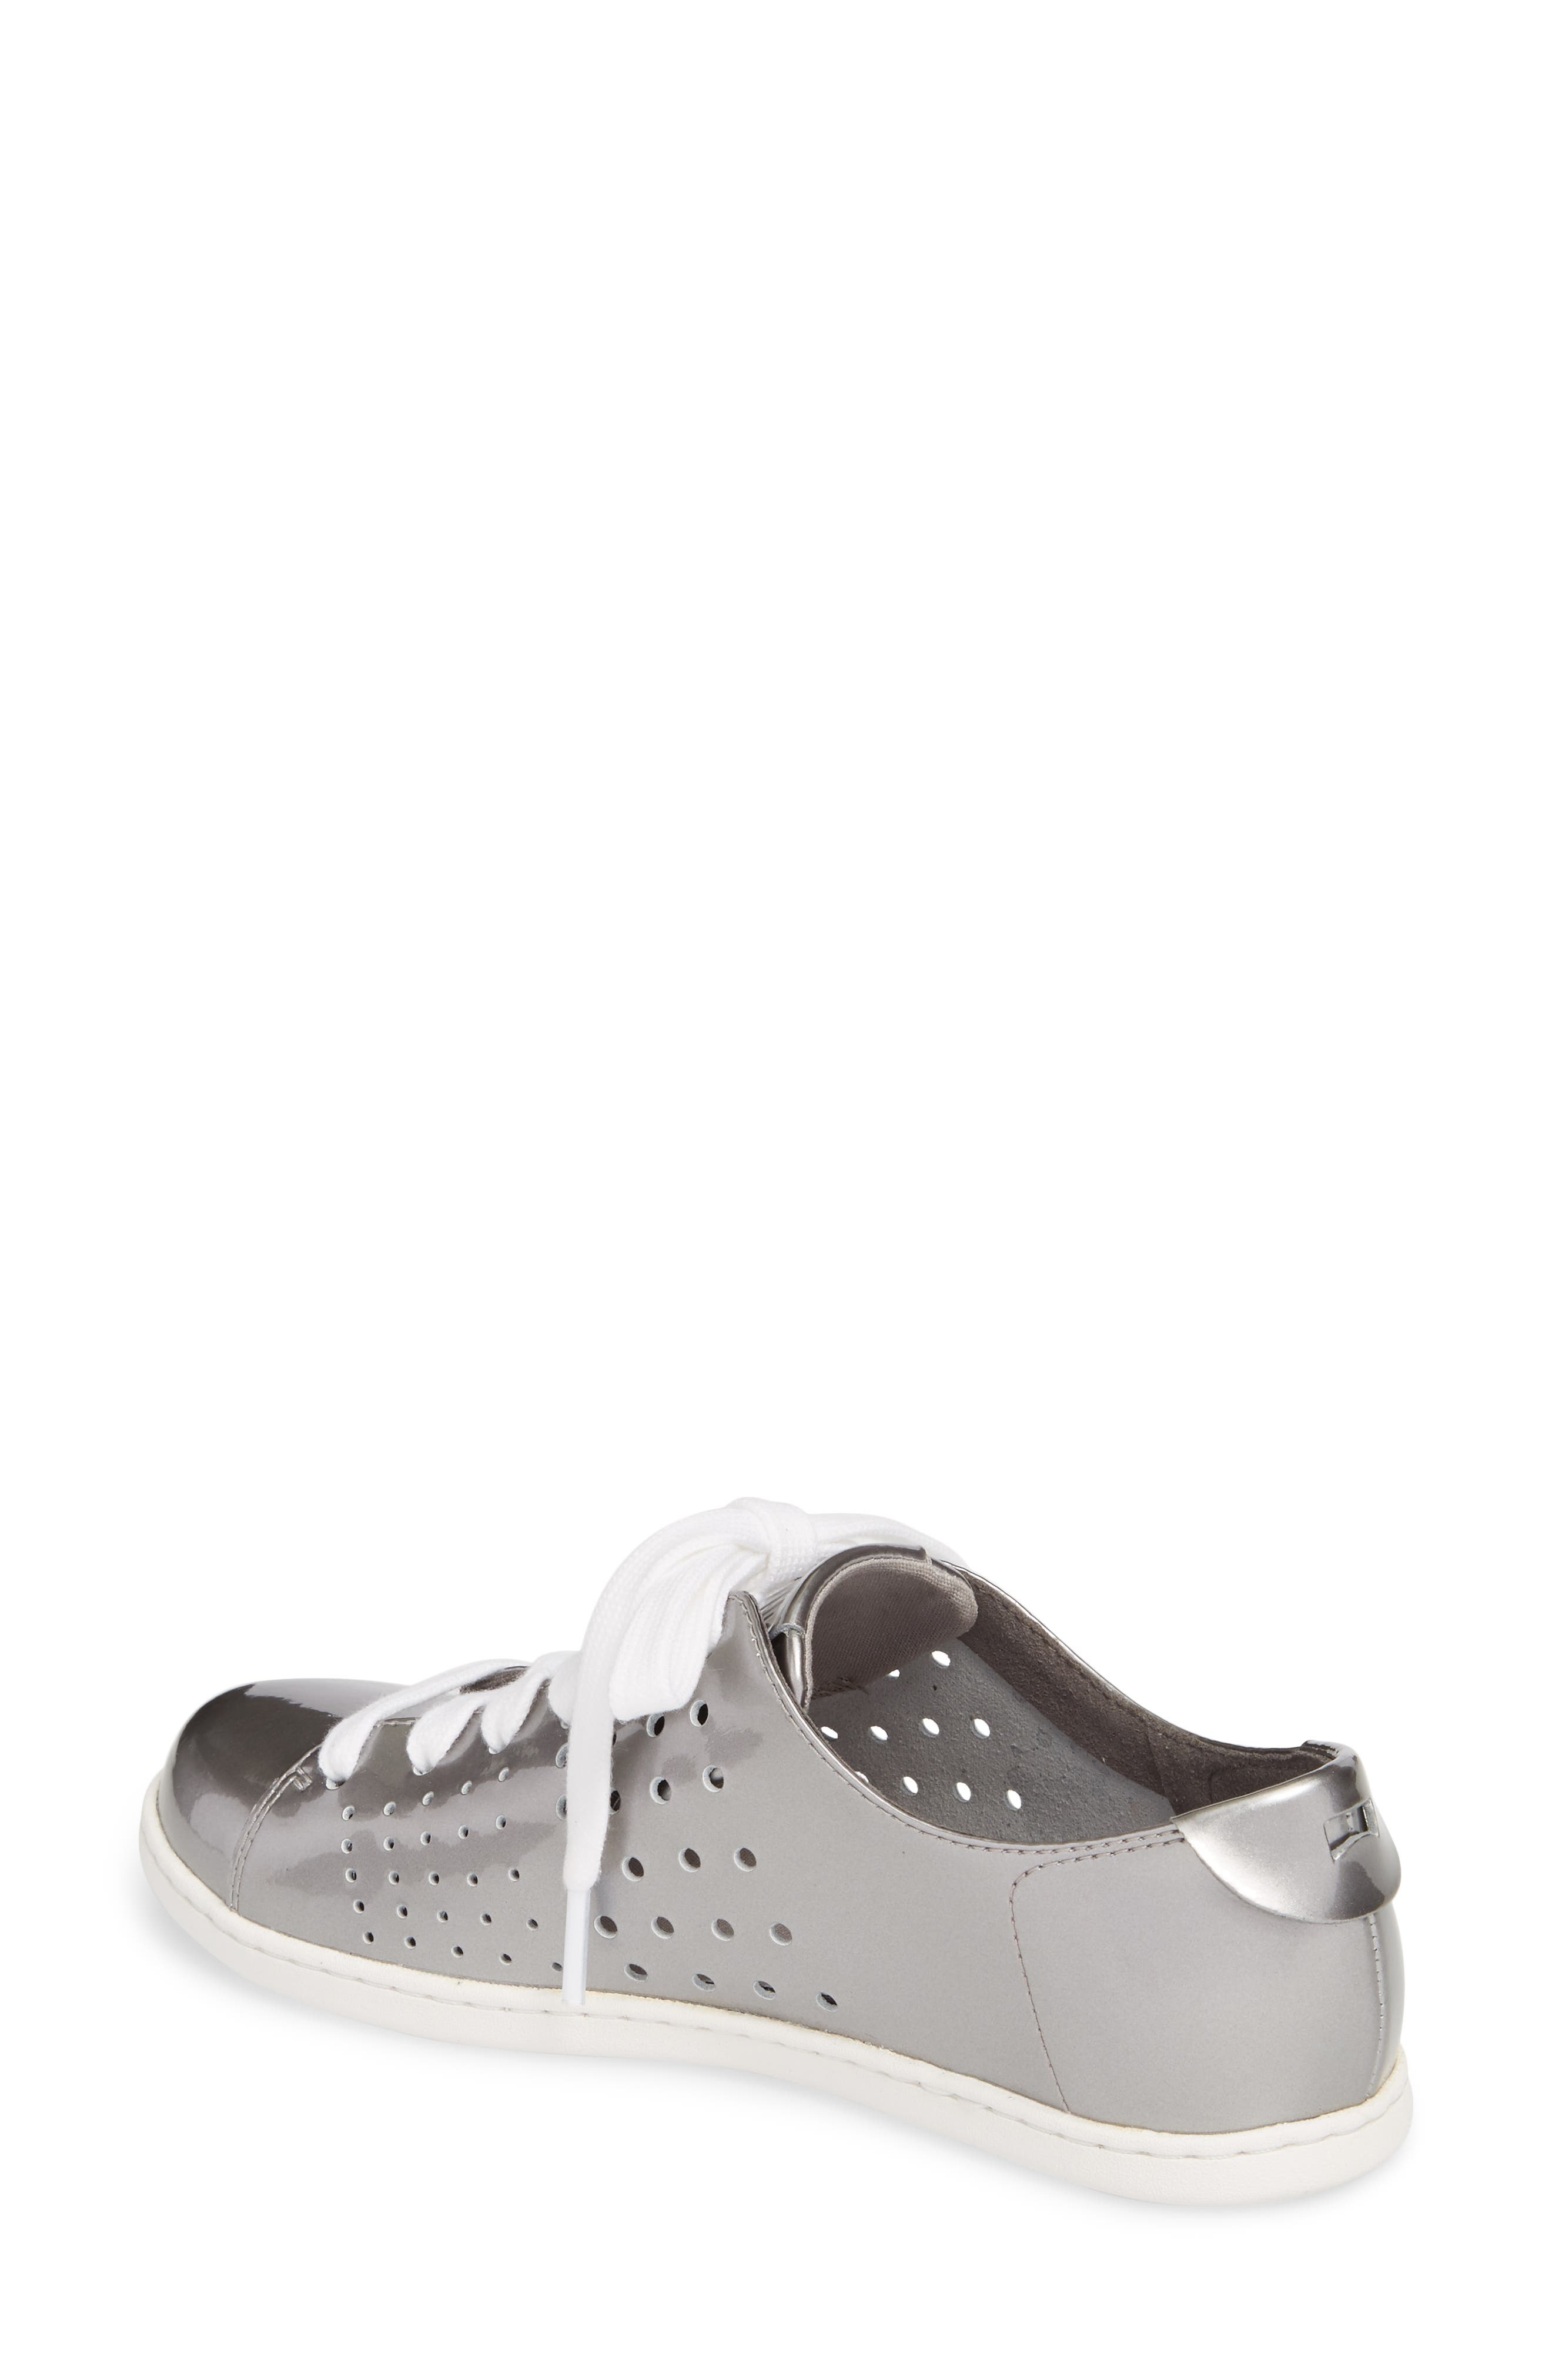 Twins Perforated Low Top Sneaker,                             Alternate thumbnail 2, color,                             030